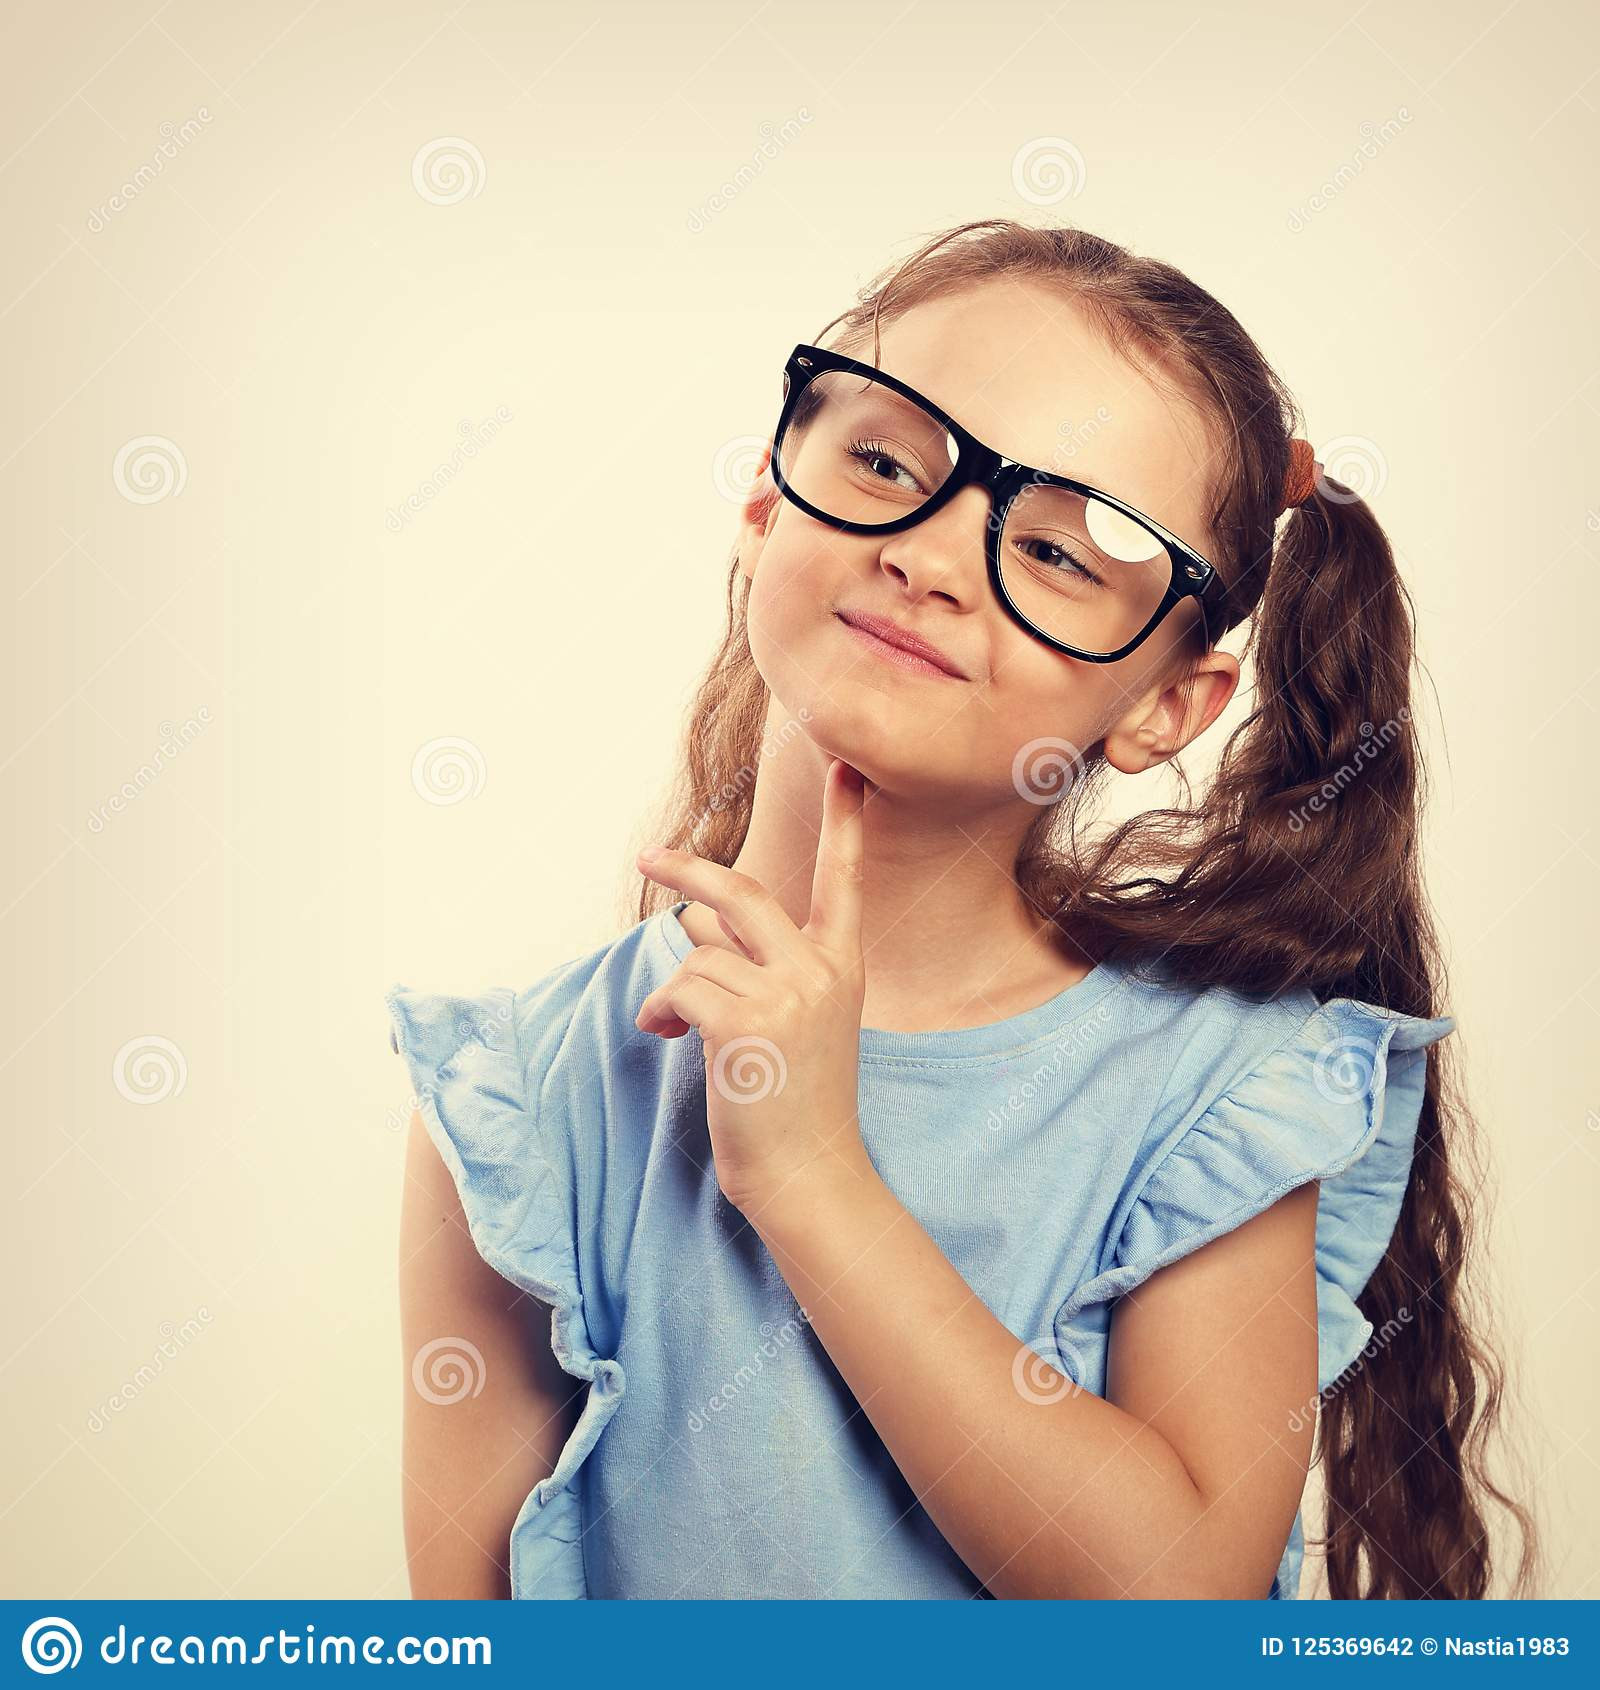 96e0e88b67 Fun Grimacing Happy Girl In Eye Glasses Thinking And Looking Up ...